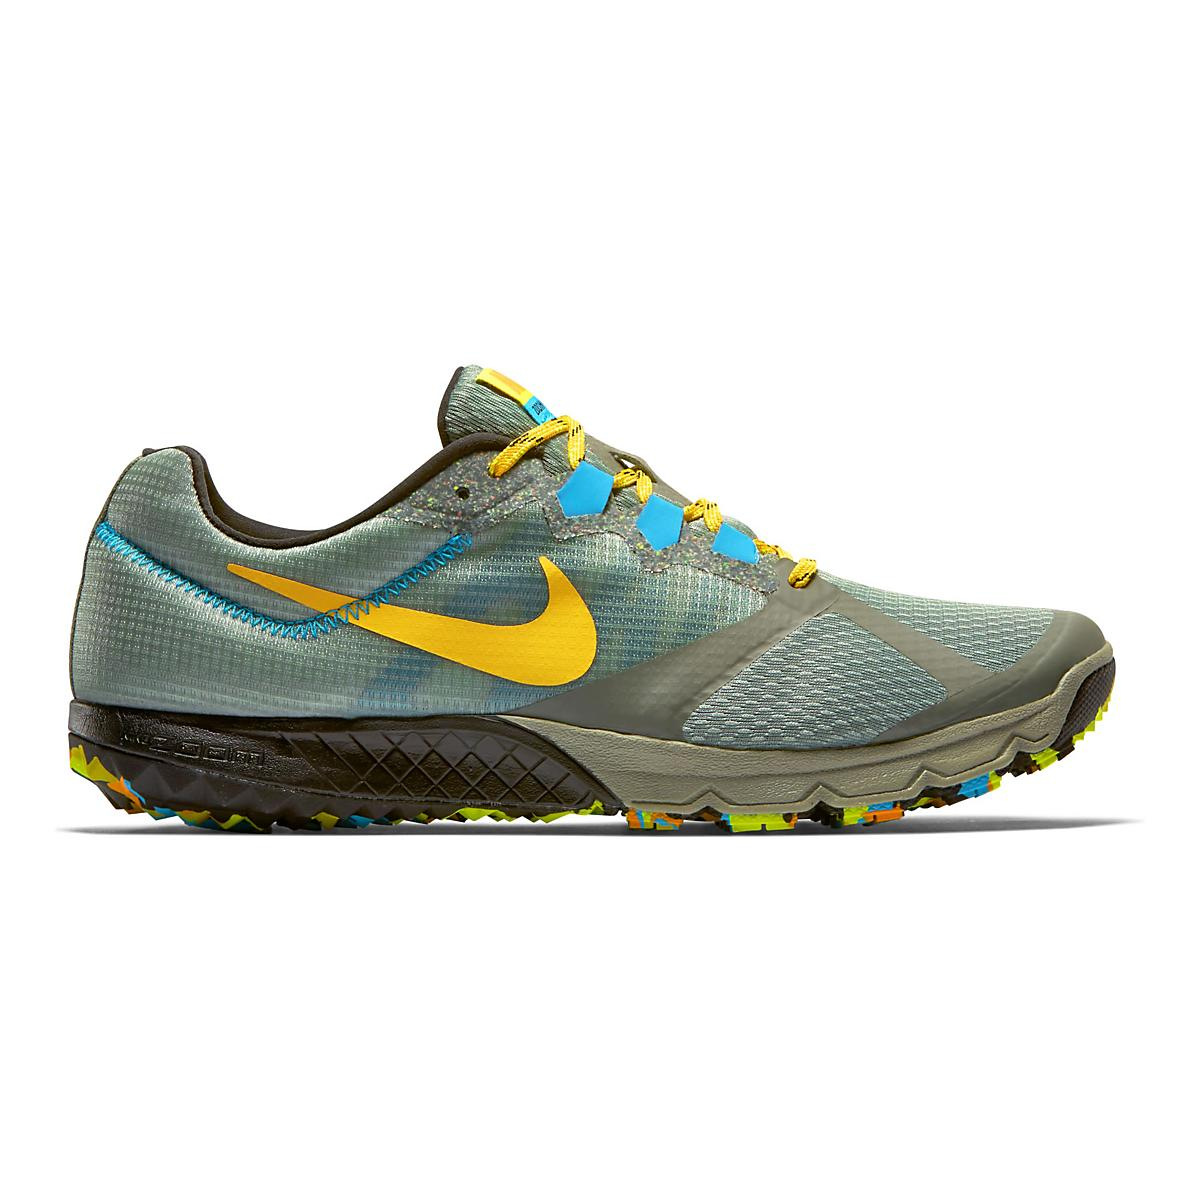 71e57118c01 Mens Nike Air Zoom Wildhorse 2 Trail Running Shoe at Road Runner Sports